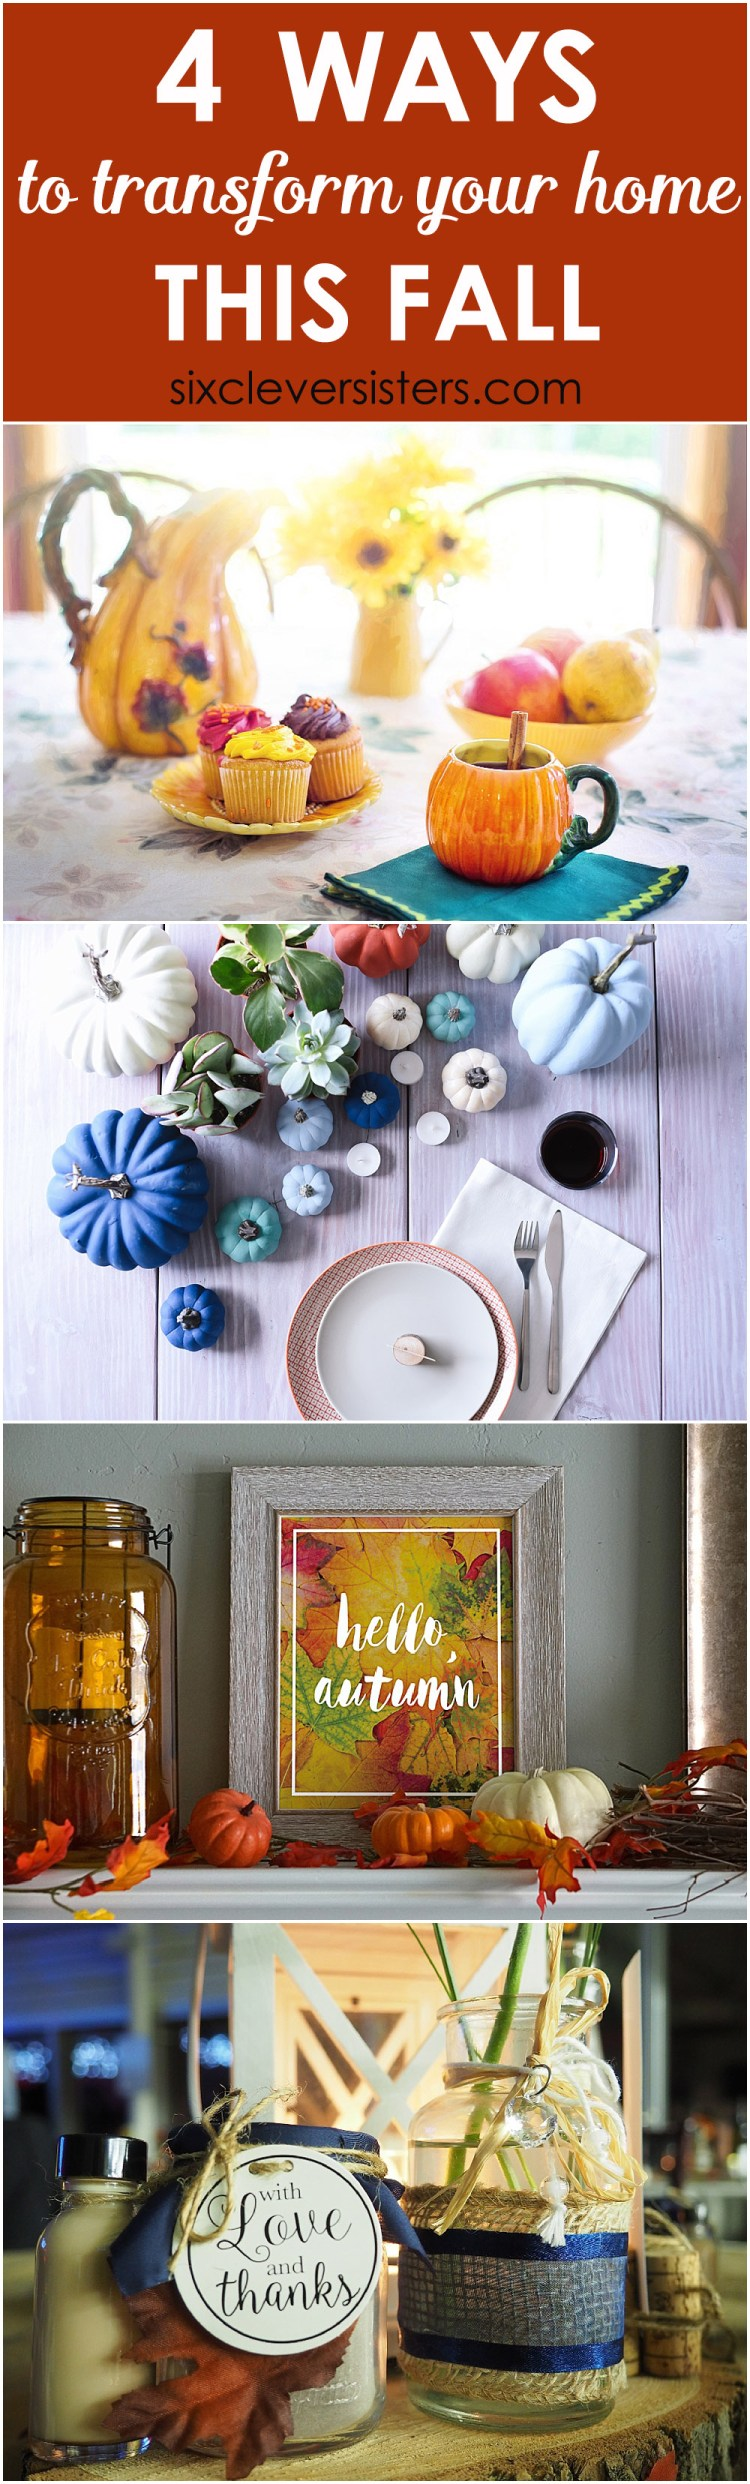 Transform Your Home 4 ways to transform your home this fall - six clever sisters